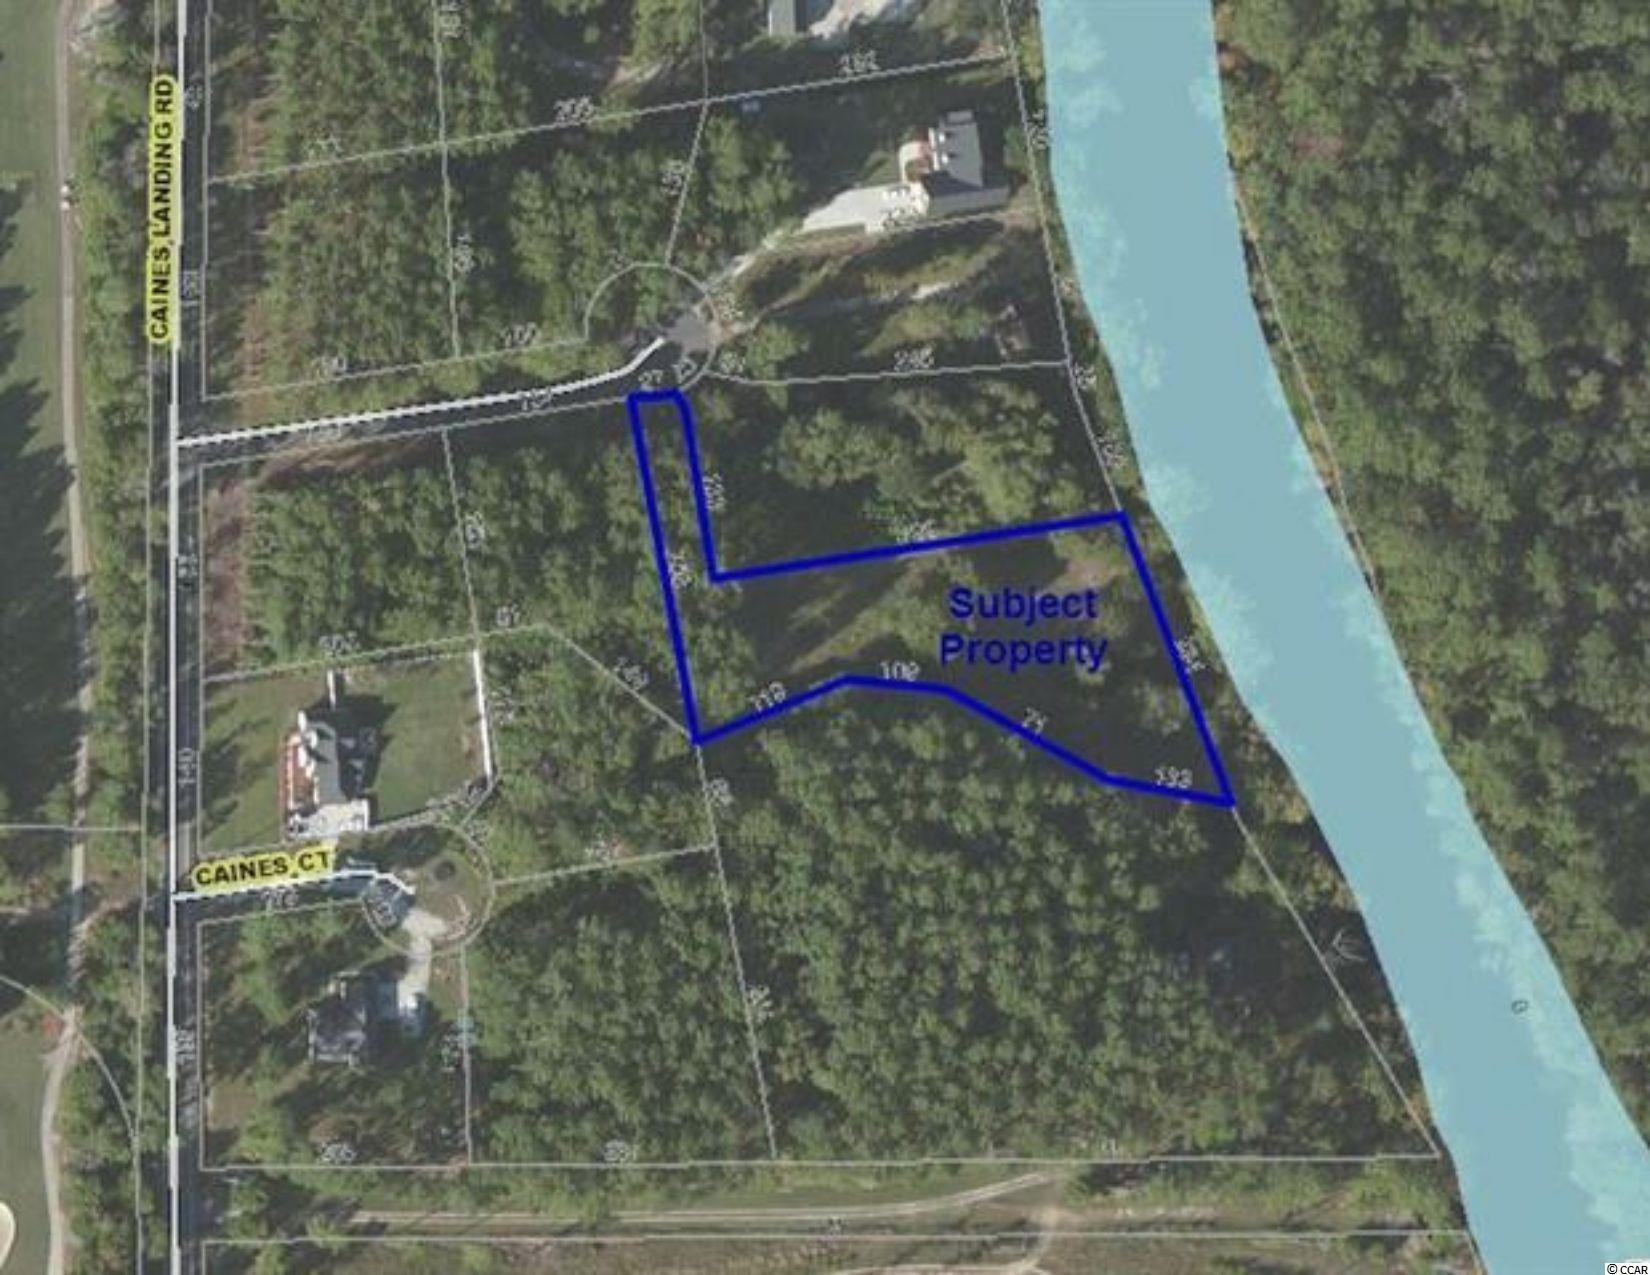 This 1.29 acre lot is located in Caines Landing, at the end of the cul-de-sac on Alligator Court. Property has 234 feet of river frontage on the Waccamaw River! Community has it's own private boat landing close by, along with other great amenities without the HOA fees!  Adjoining lot #17 is also available for sale.